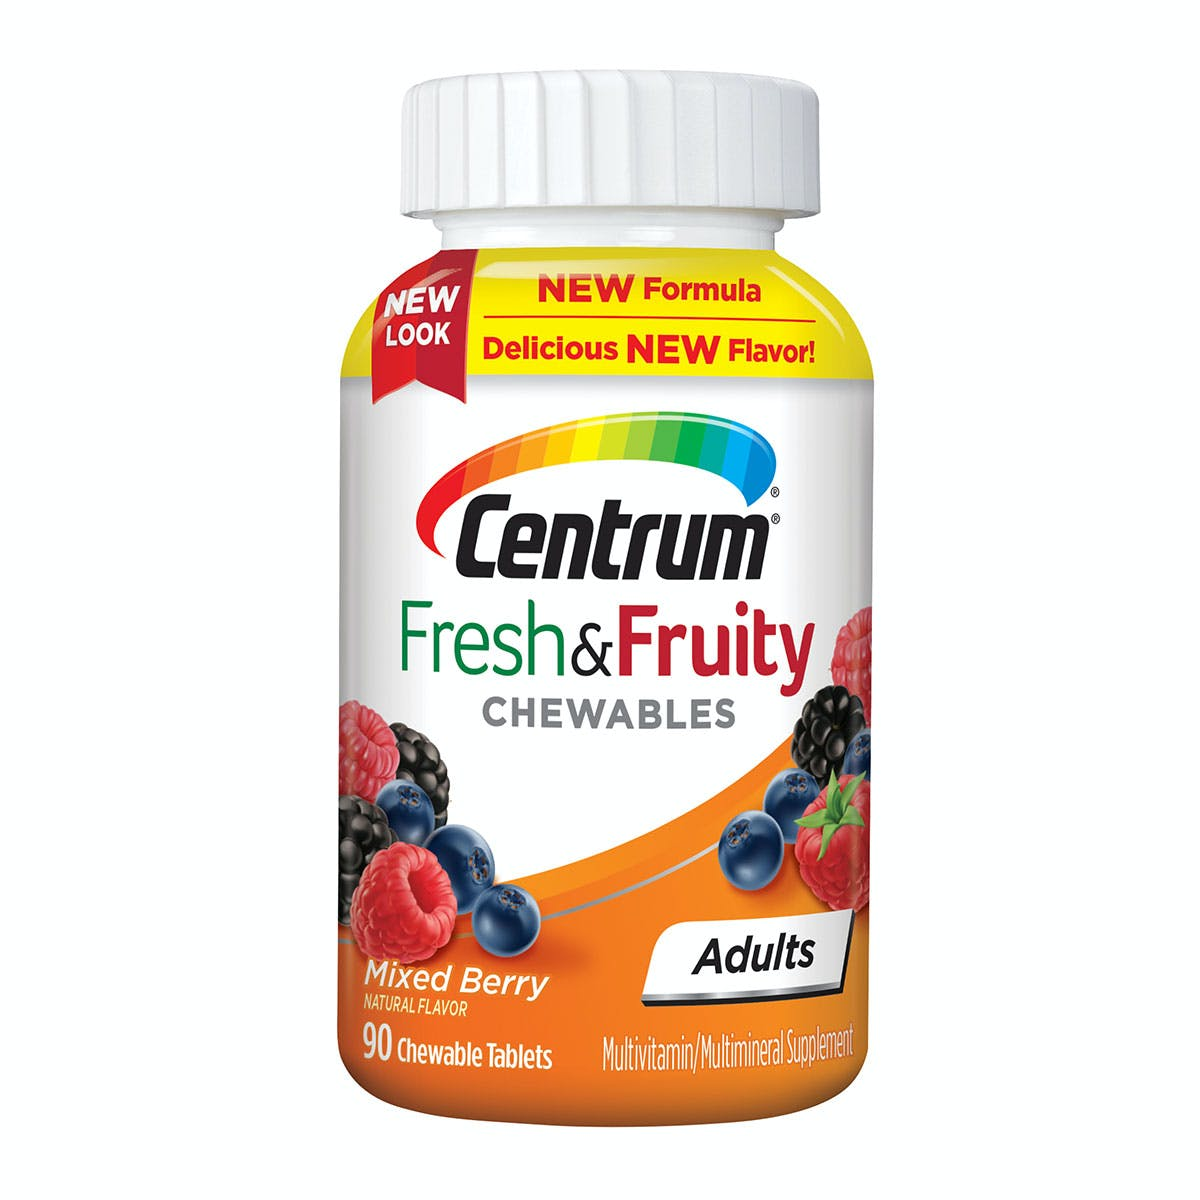 Bottle of Centrum Adults Fresh & Fruity Chewables